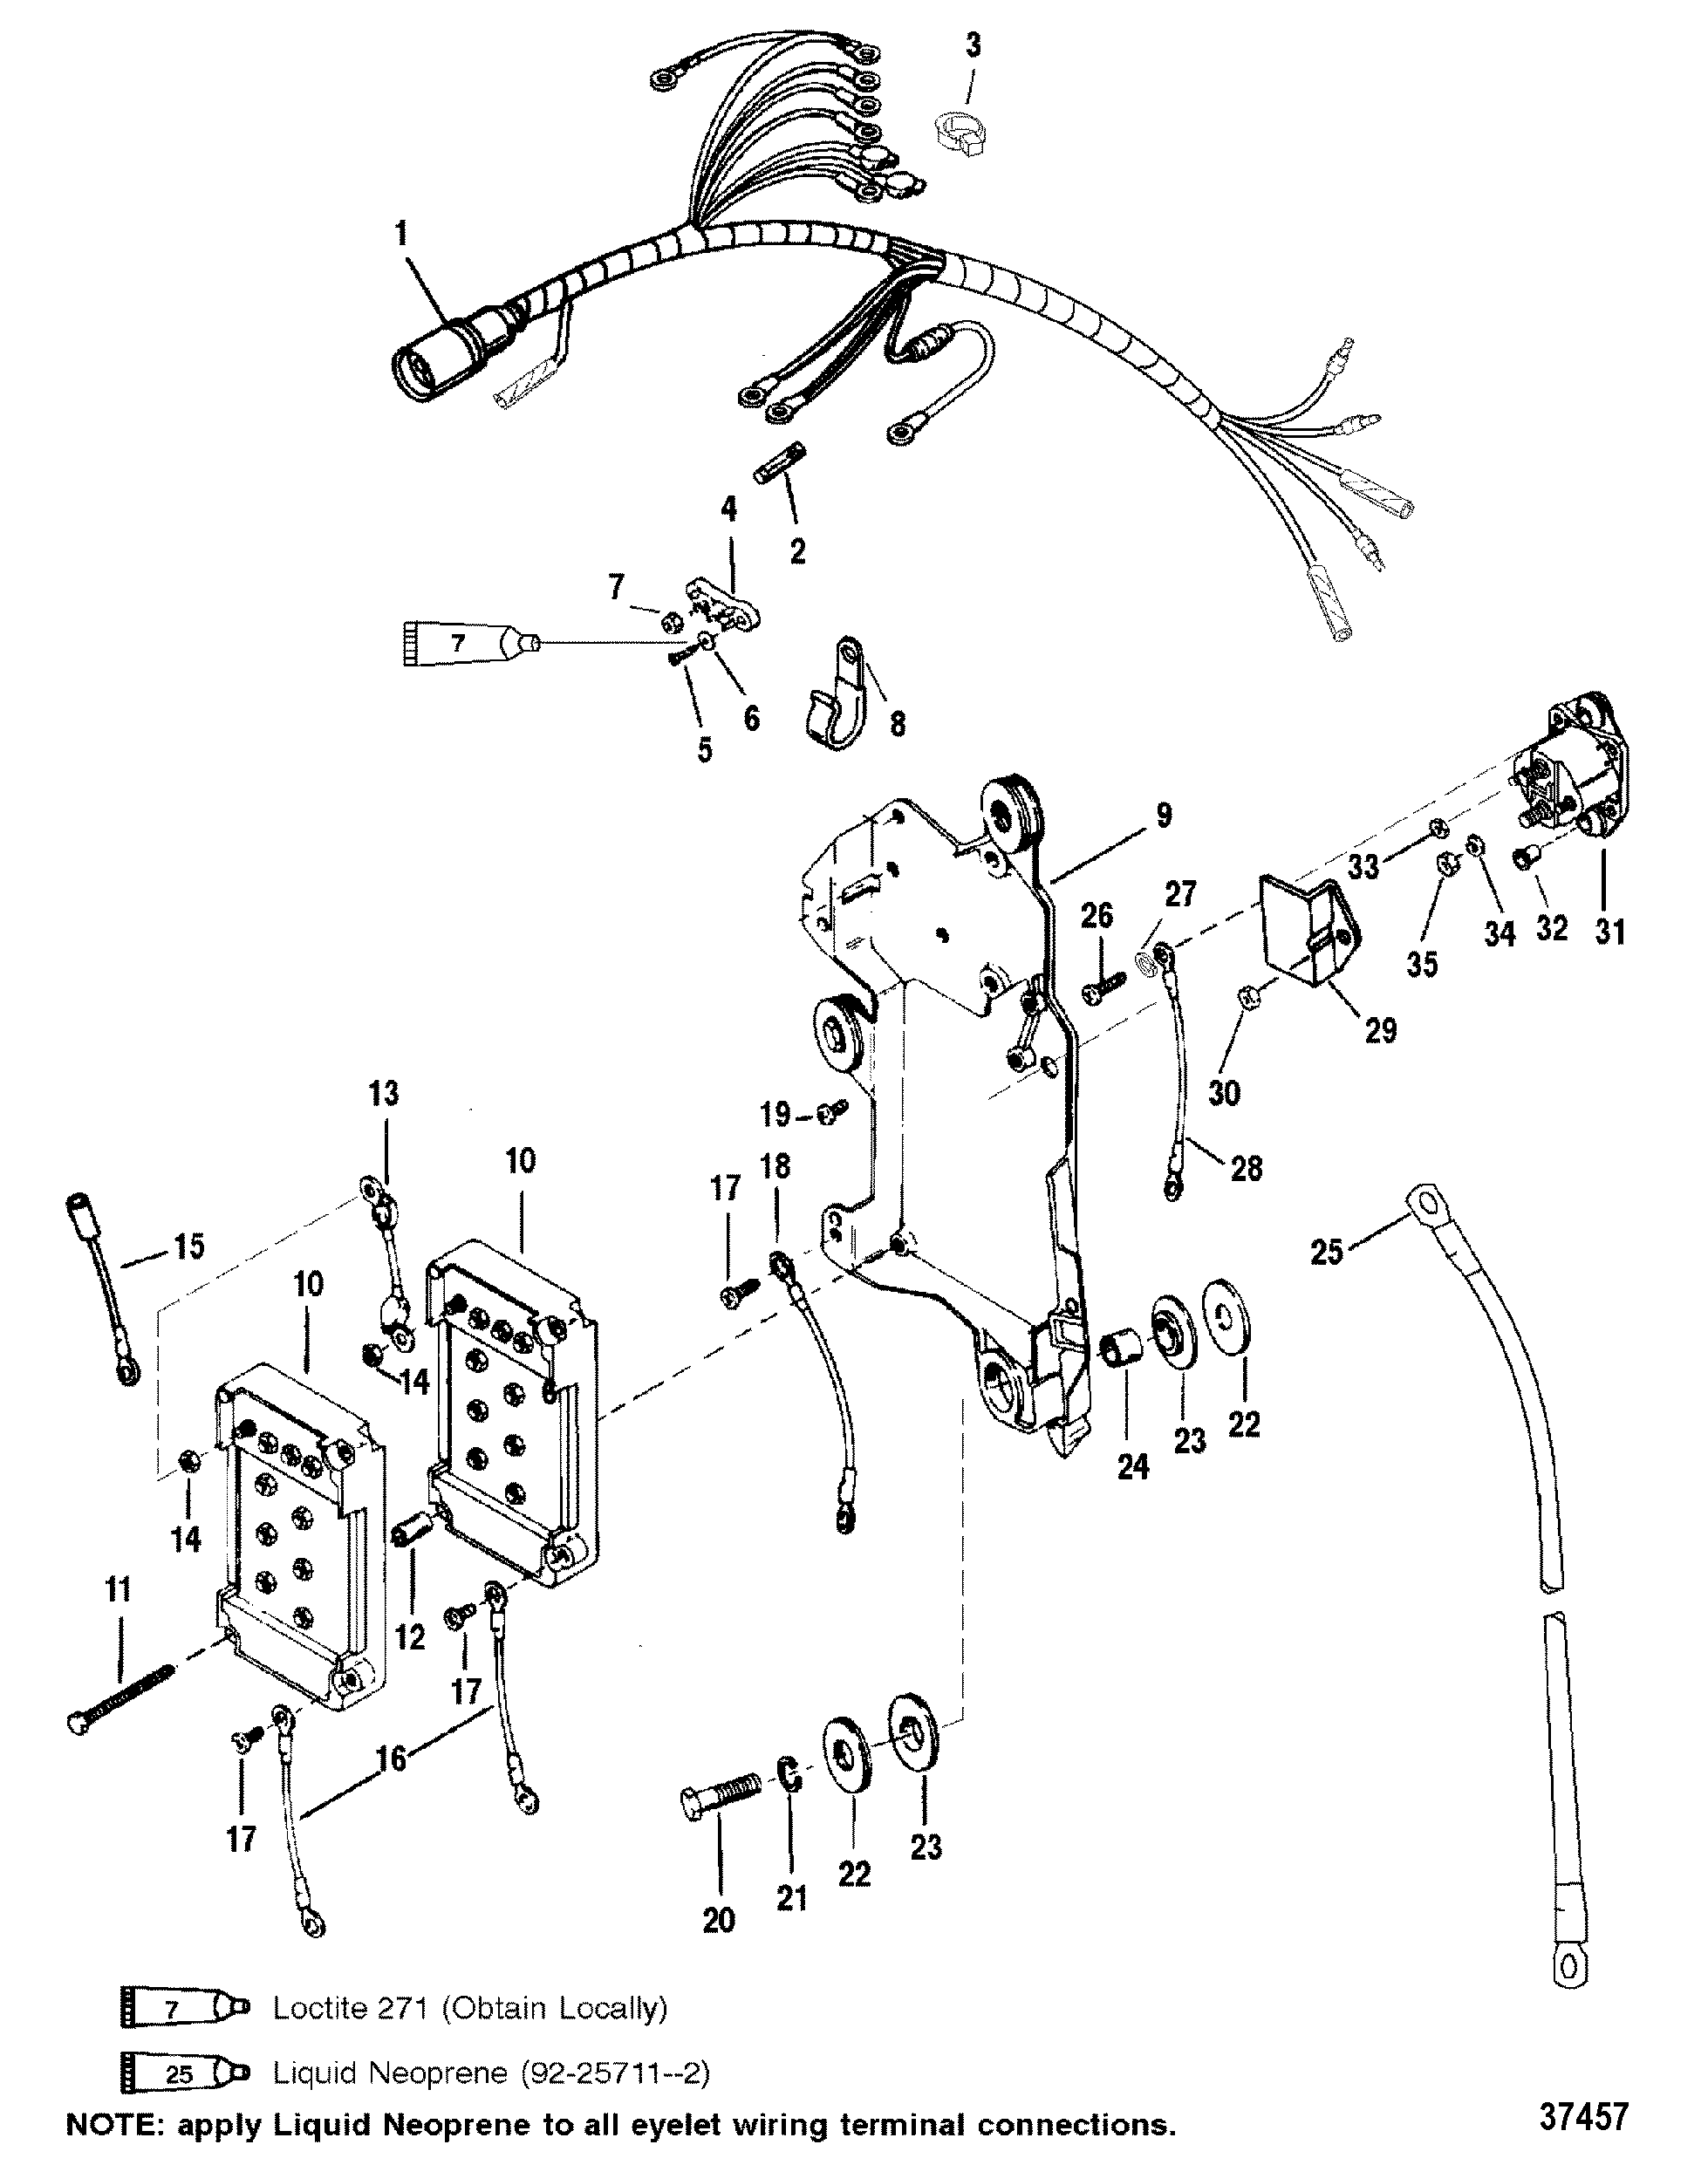 37457 wiring harness starter solenoid for mariner mercury 150 175 200 efi mercury 14 pin wiring harness diagram at n-0.co